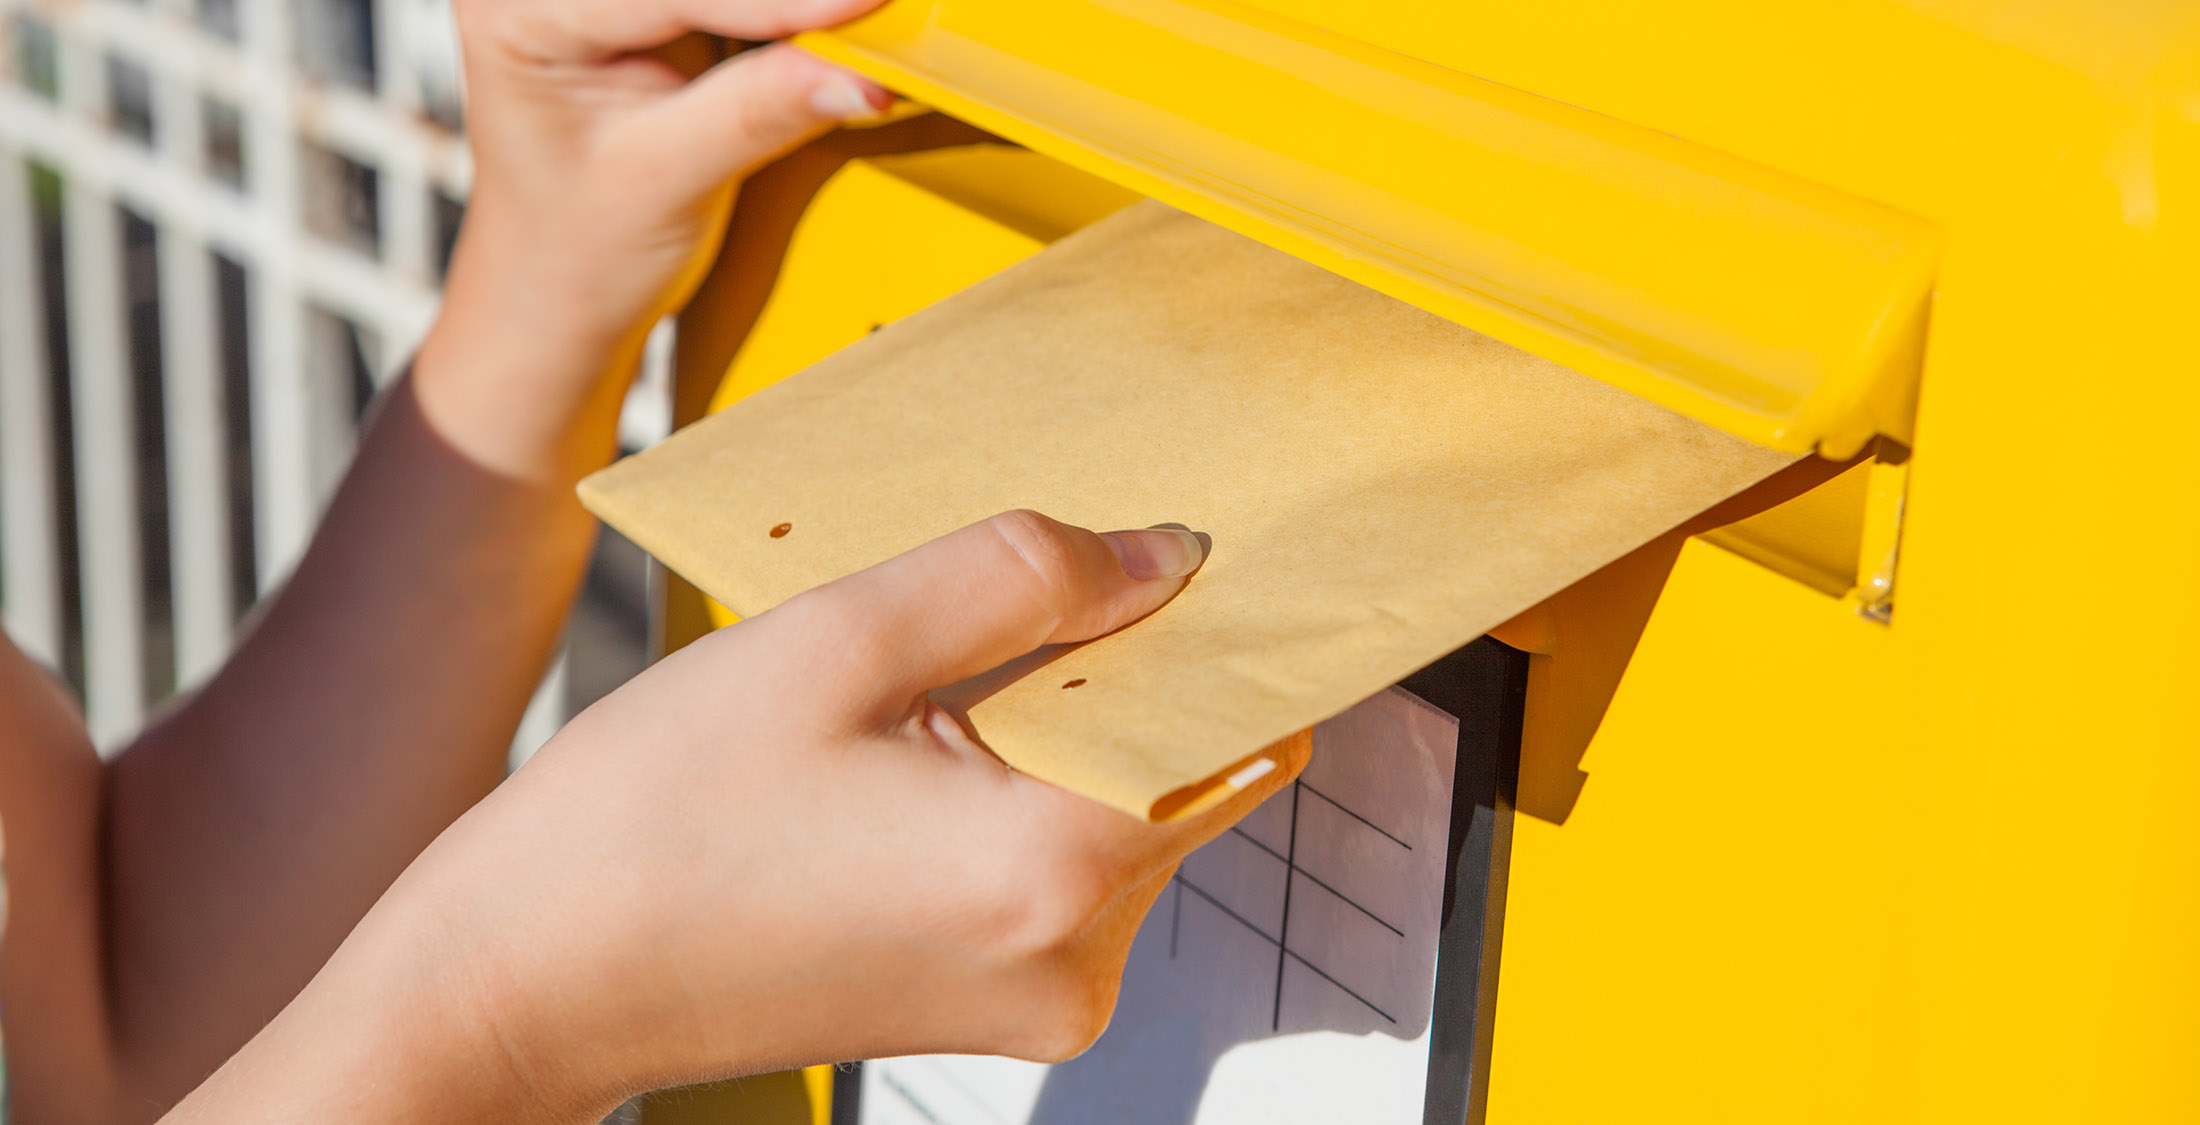 place envelope into mail slot